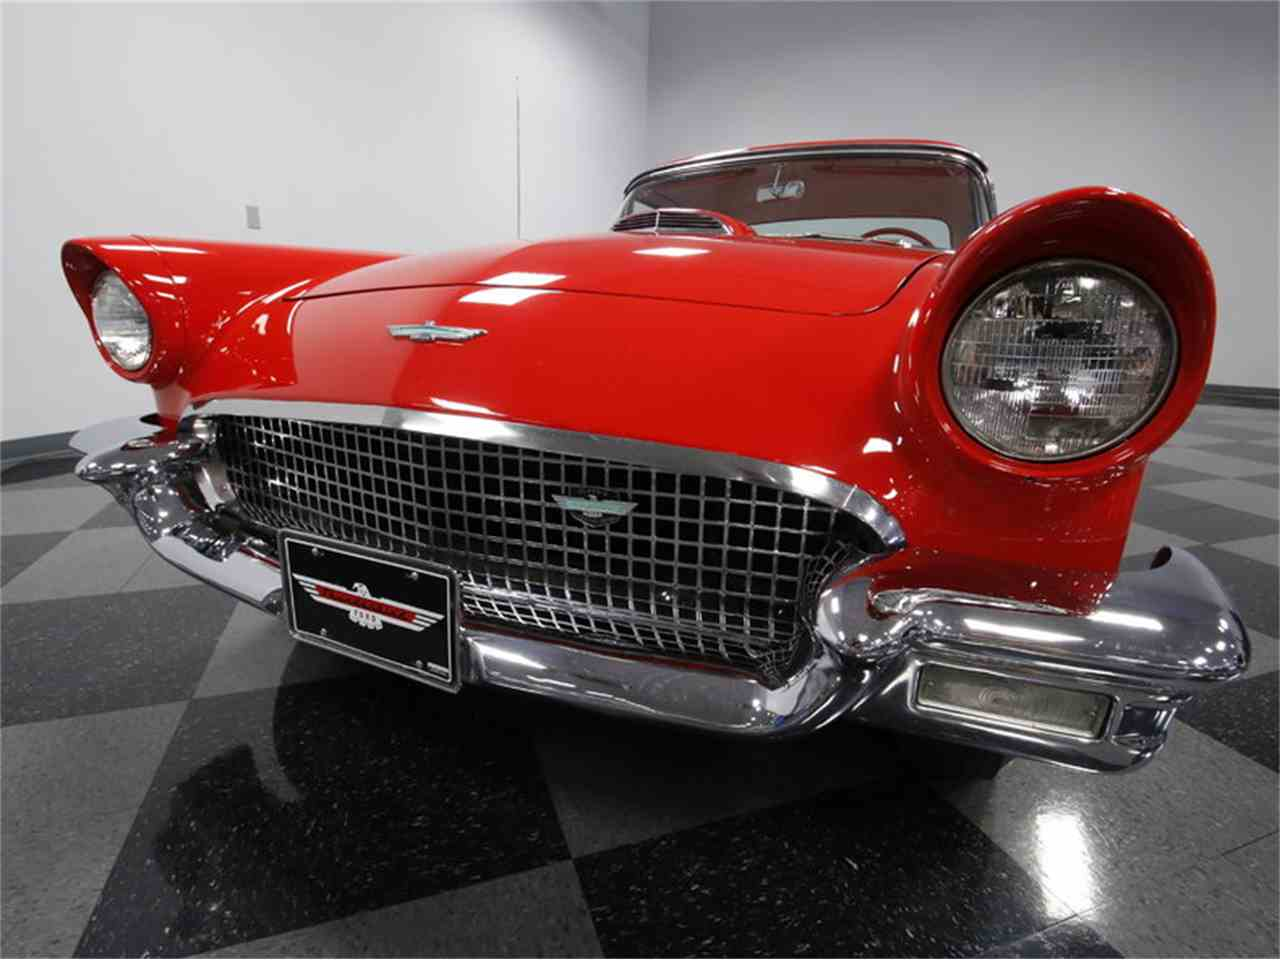 Large Picture of '57 Ford Thunderbird located in North Carolina - $41,995.00 Offered by Streetside Classics - Charlotte - LSNS